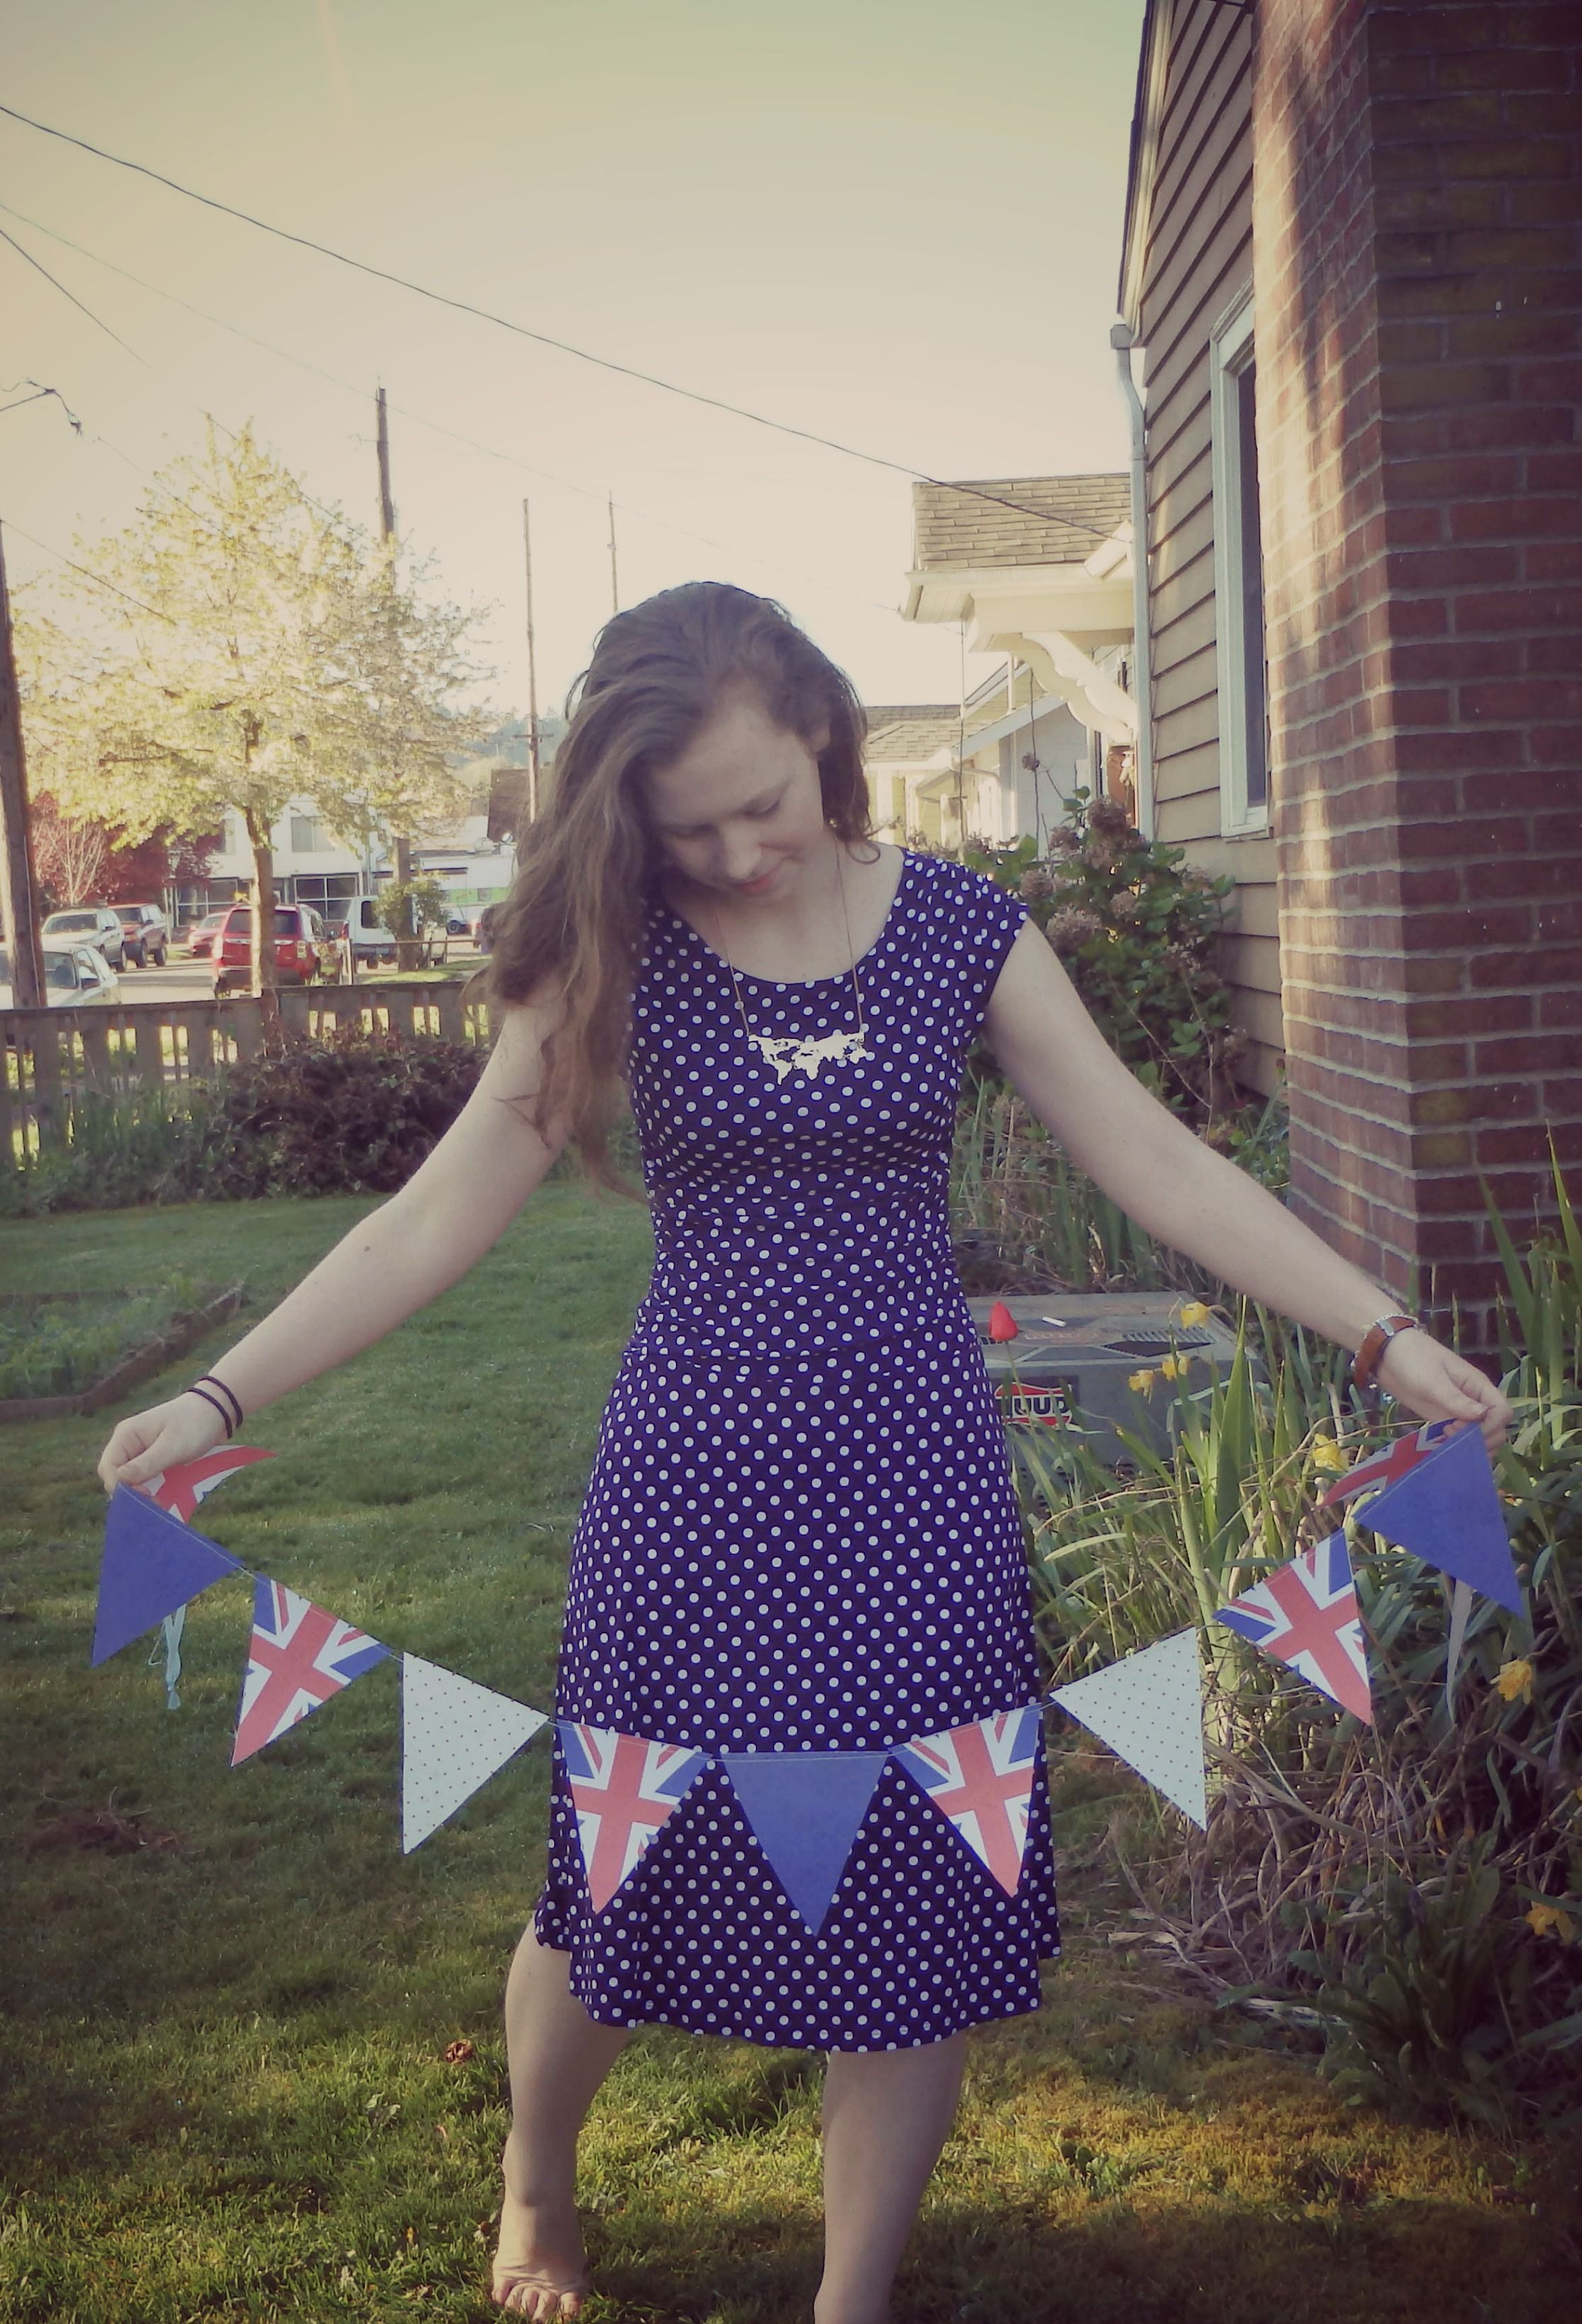 Union Jack Party Bunting from Pinecone Apparel on Etsy